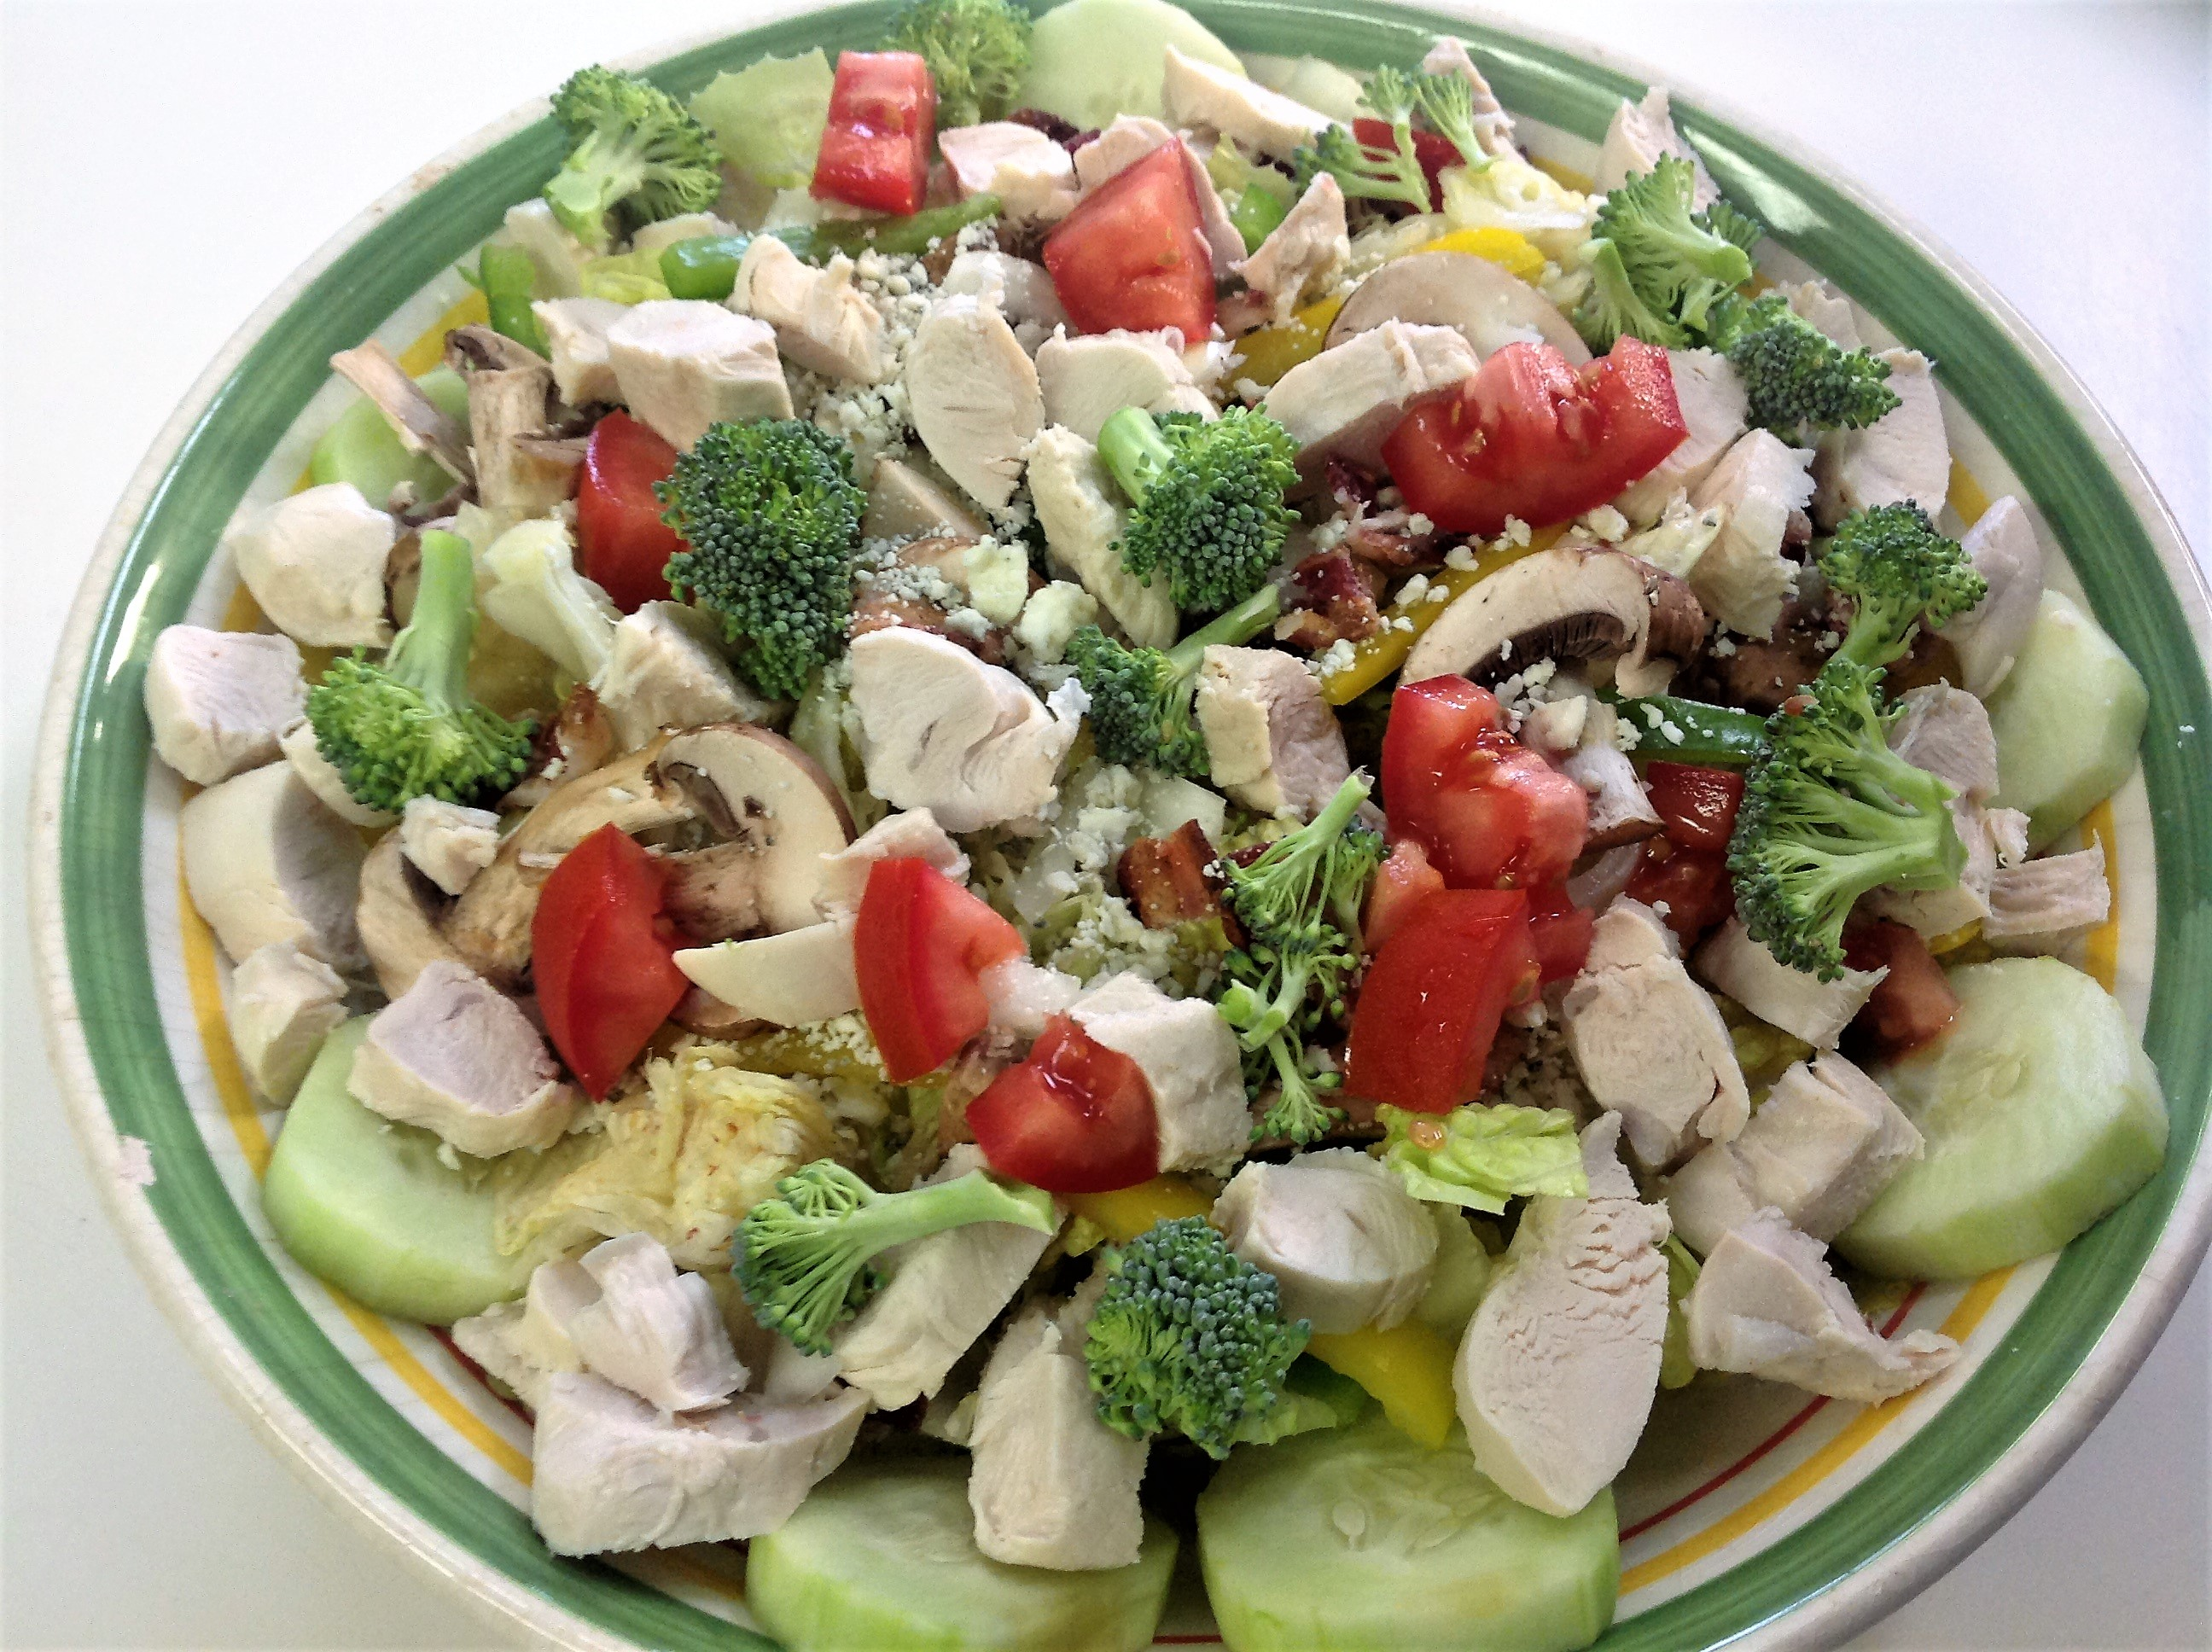 Grilled Chicken, Tomato and Baby Greens Salad with Blue Cheese James